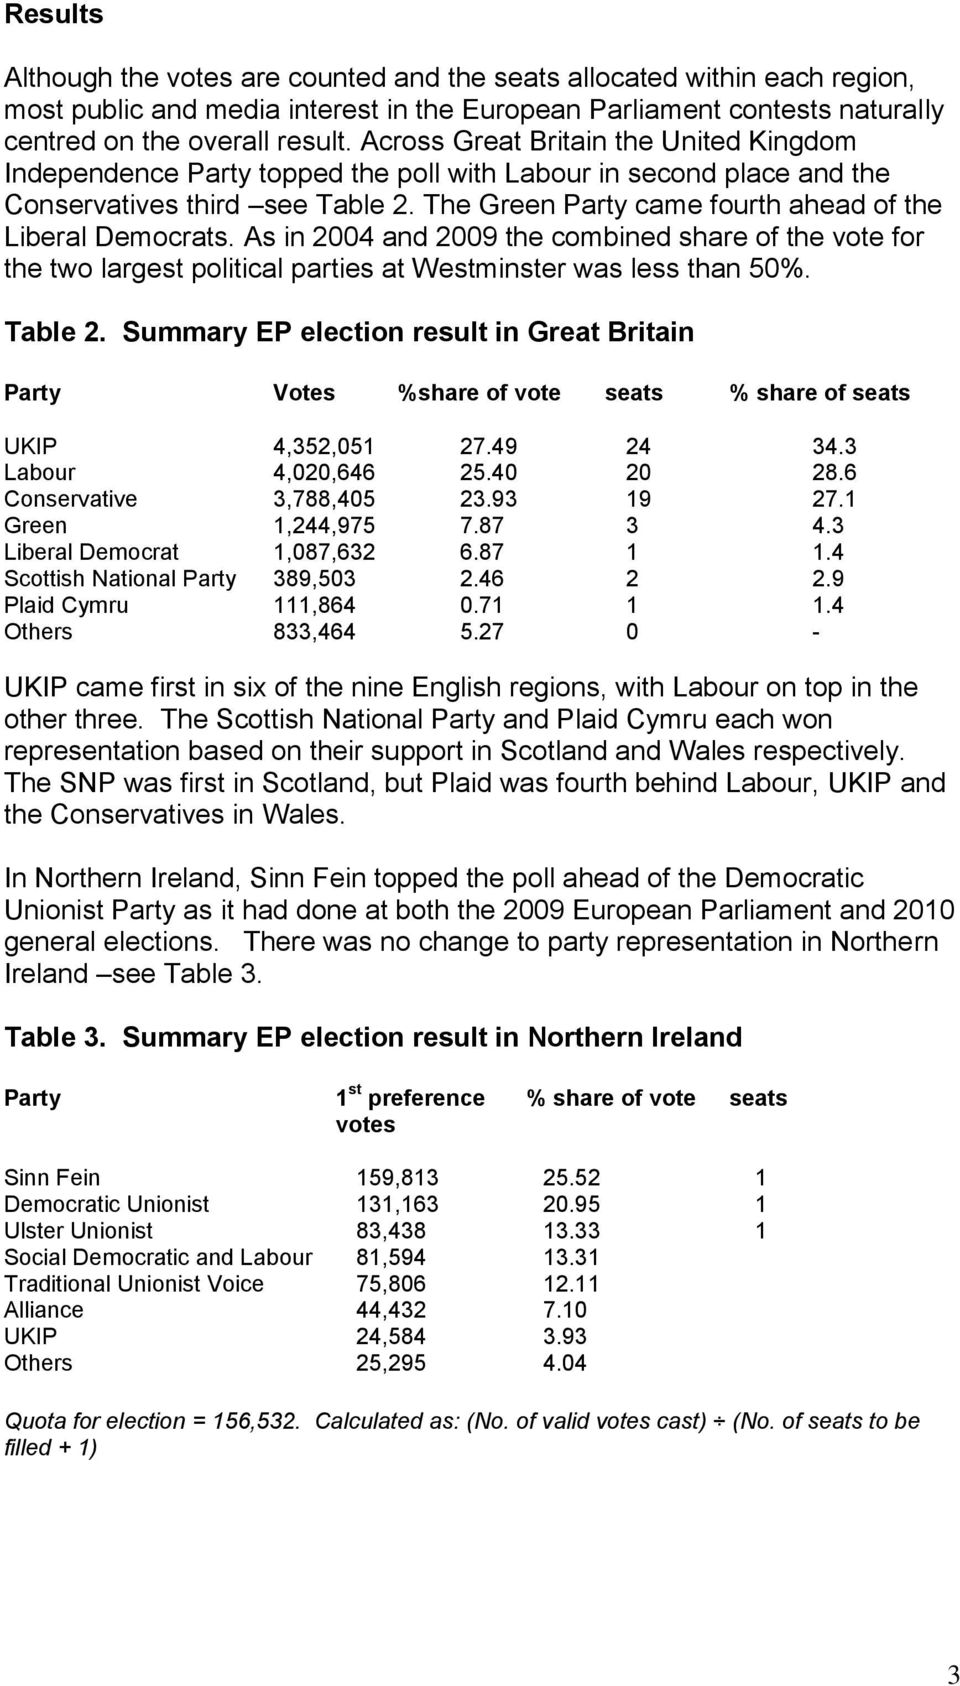 The Green Party came fourth ahead of the Liberal Democrats. As in 2004 and 2009 the combined share of the vote for the two largest political parties at Westminster was less than 50%. Table 2.